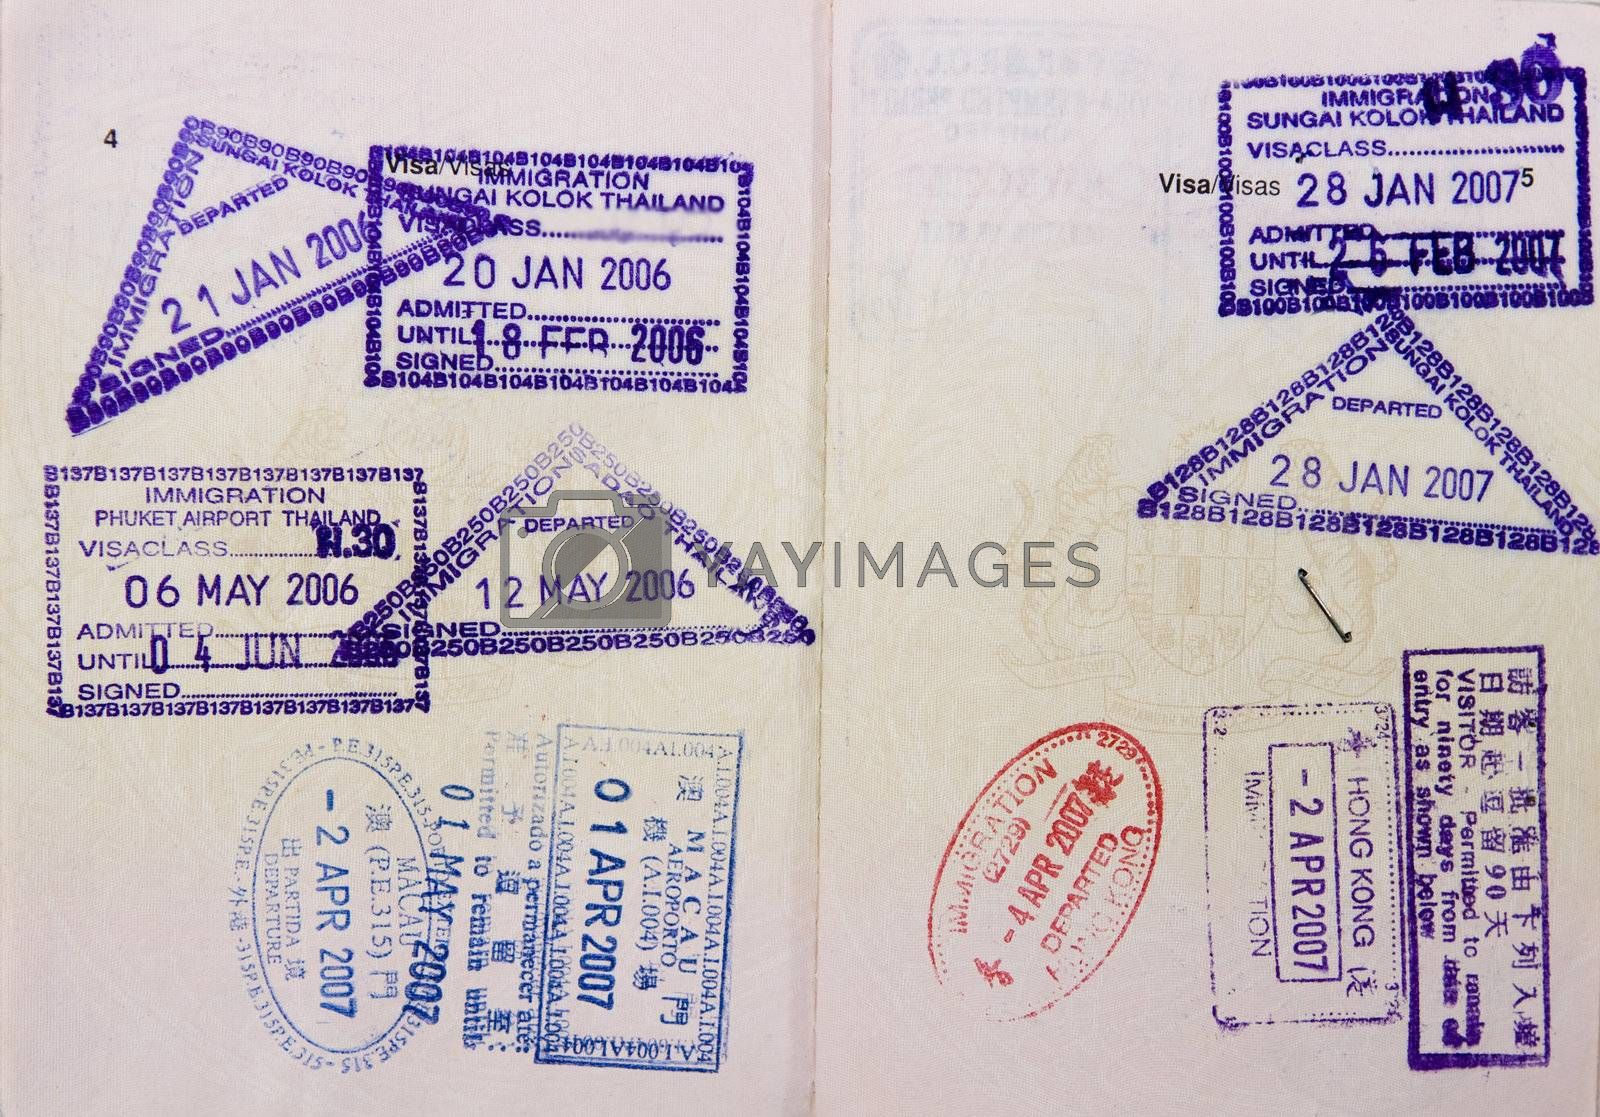 Malaysia passport travel to Asia with stamps.